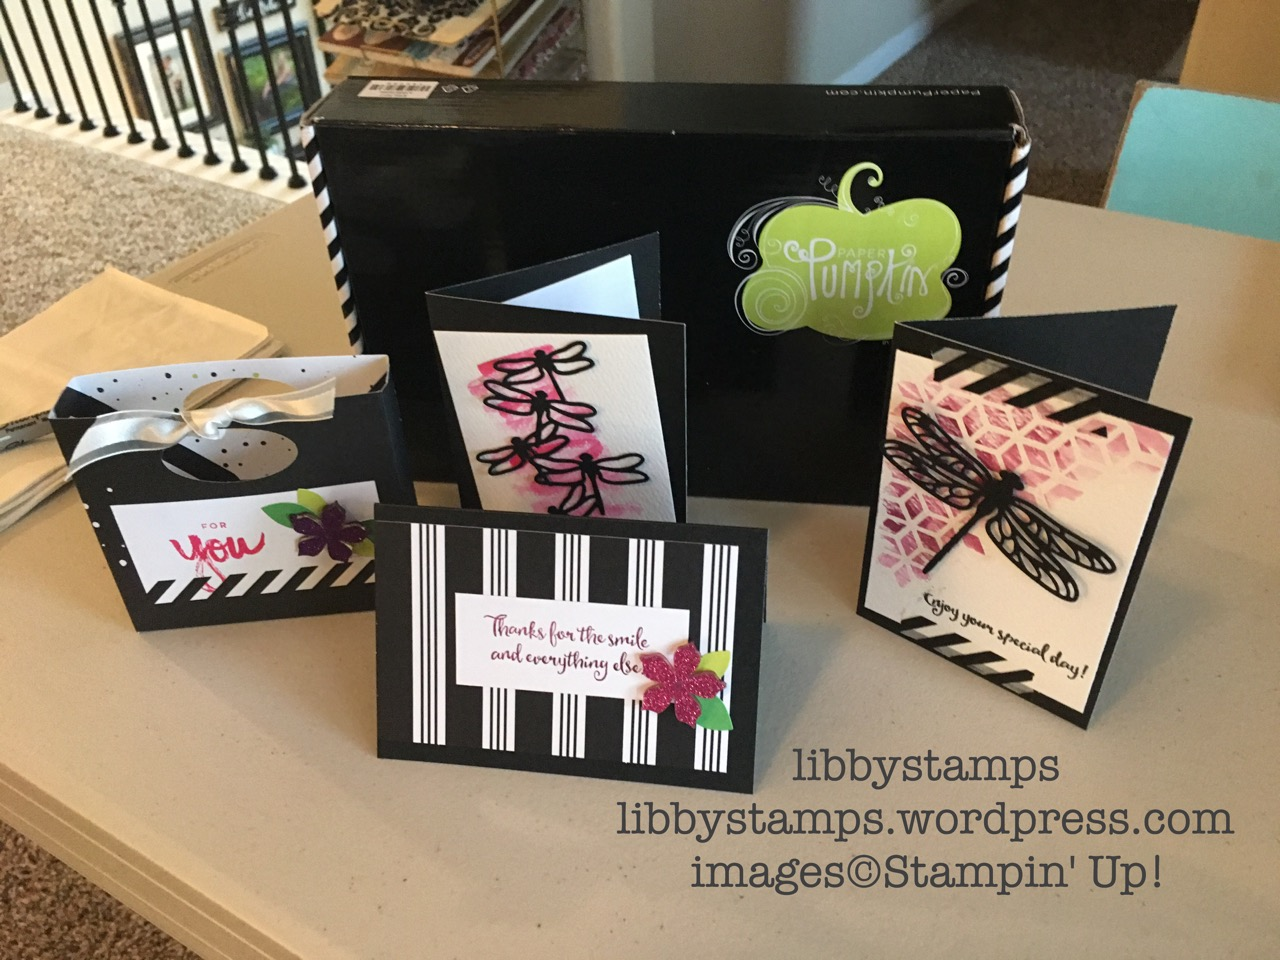 libbystamps, stampin up, It's a Sara Thing, Custom Tee, T-Shirt Builder, Custom Tee Bundle, April 2017 Paper Pumpkin